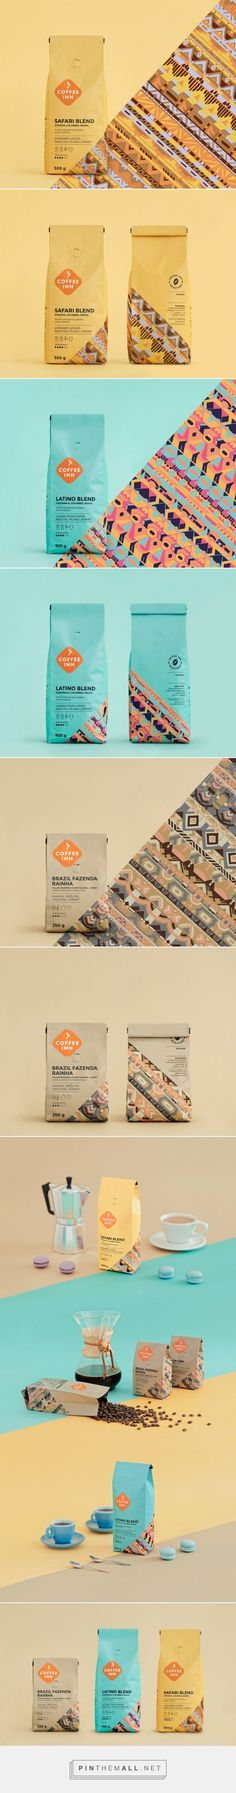 Coffee Inn - Packaging of the World - Creative Package Design Gallery - http://www.packagingoftheworld.com/2016/08/coffee-inn.html